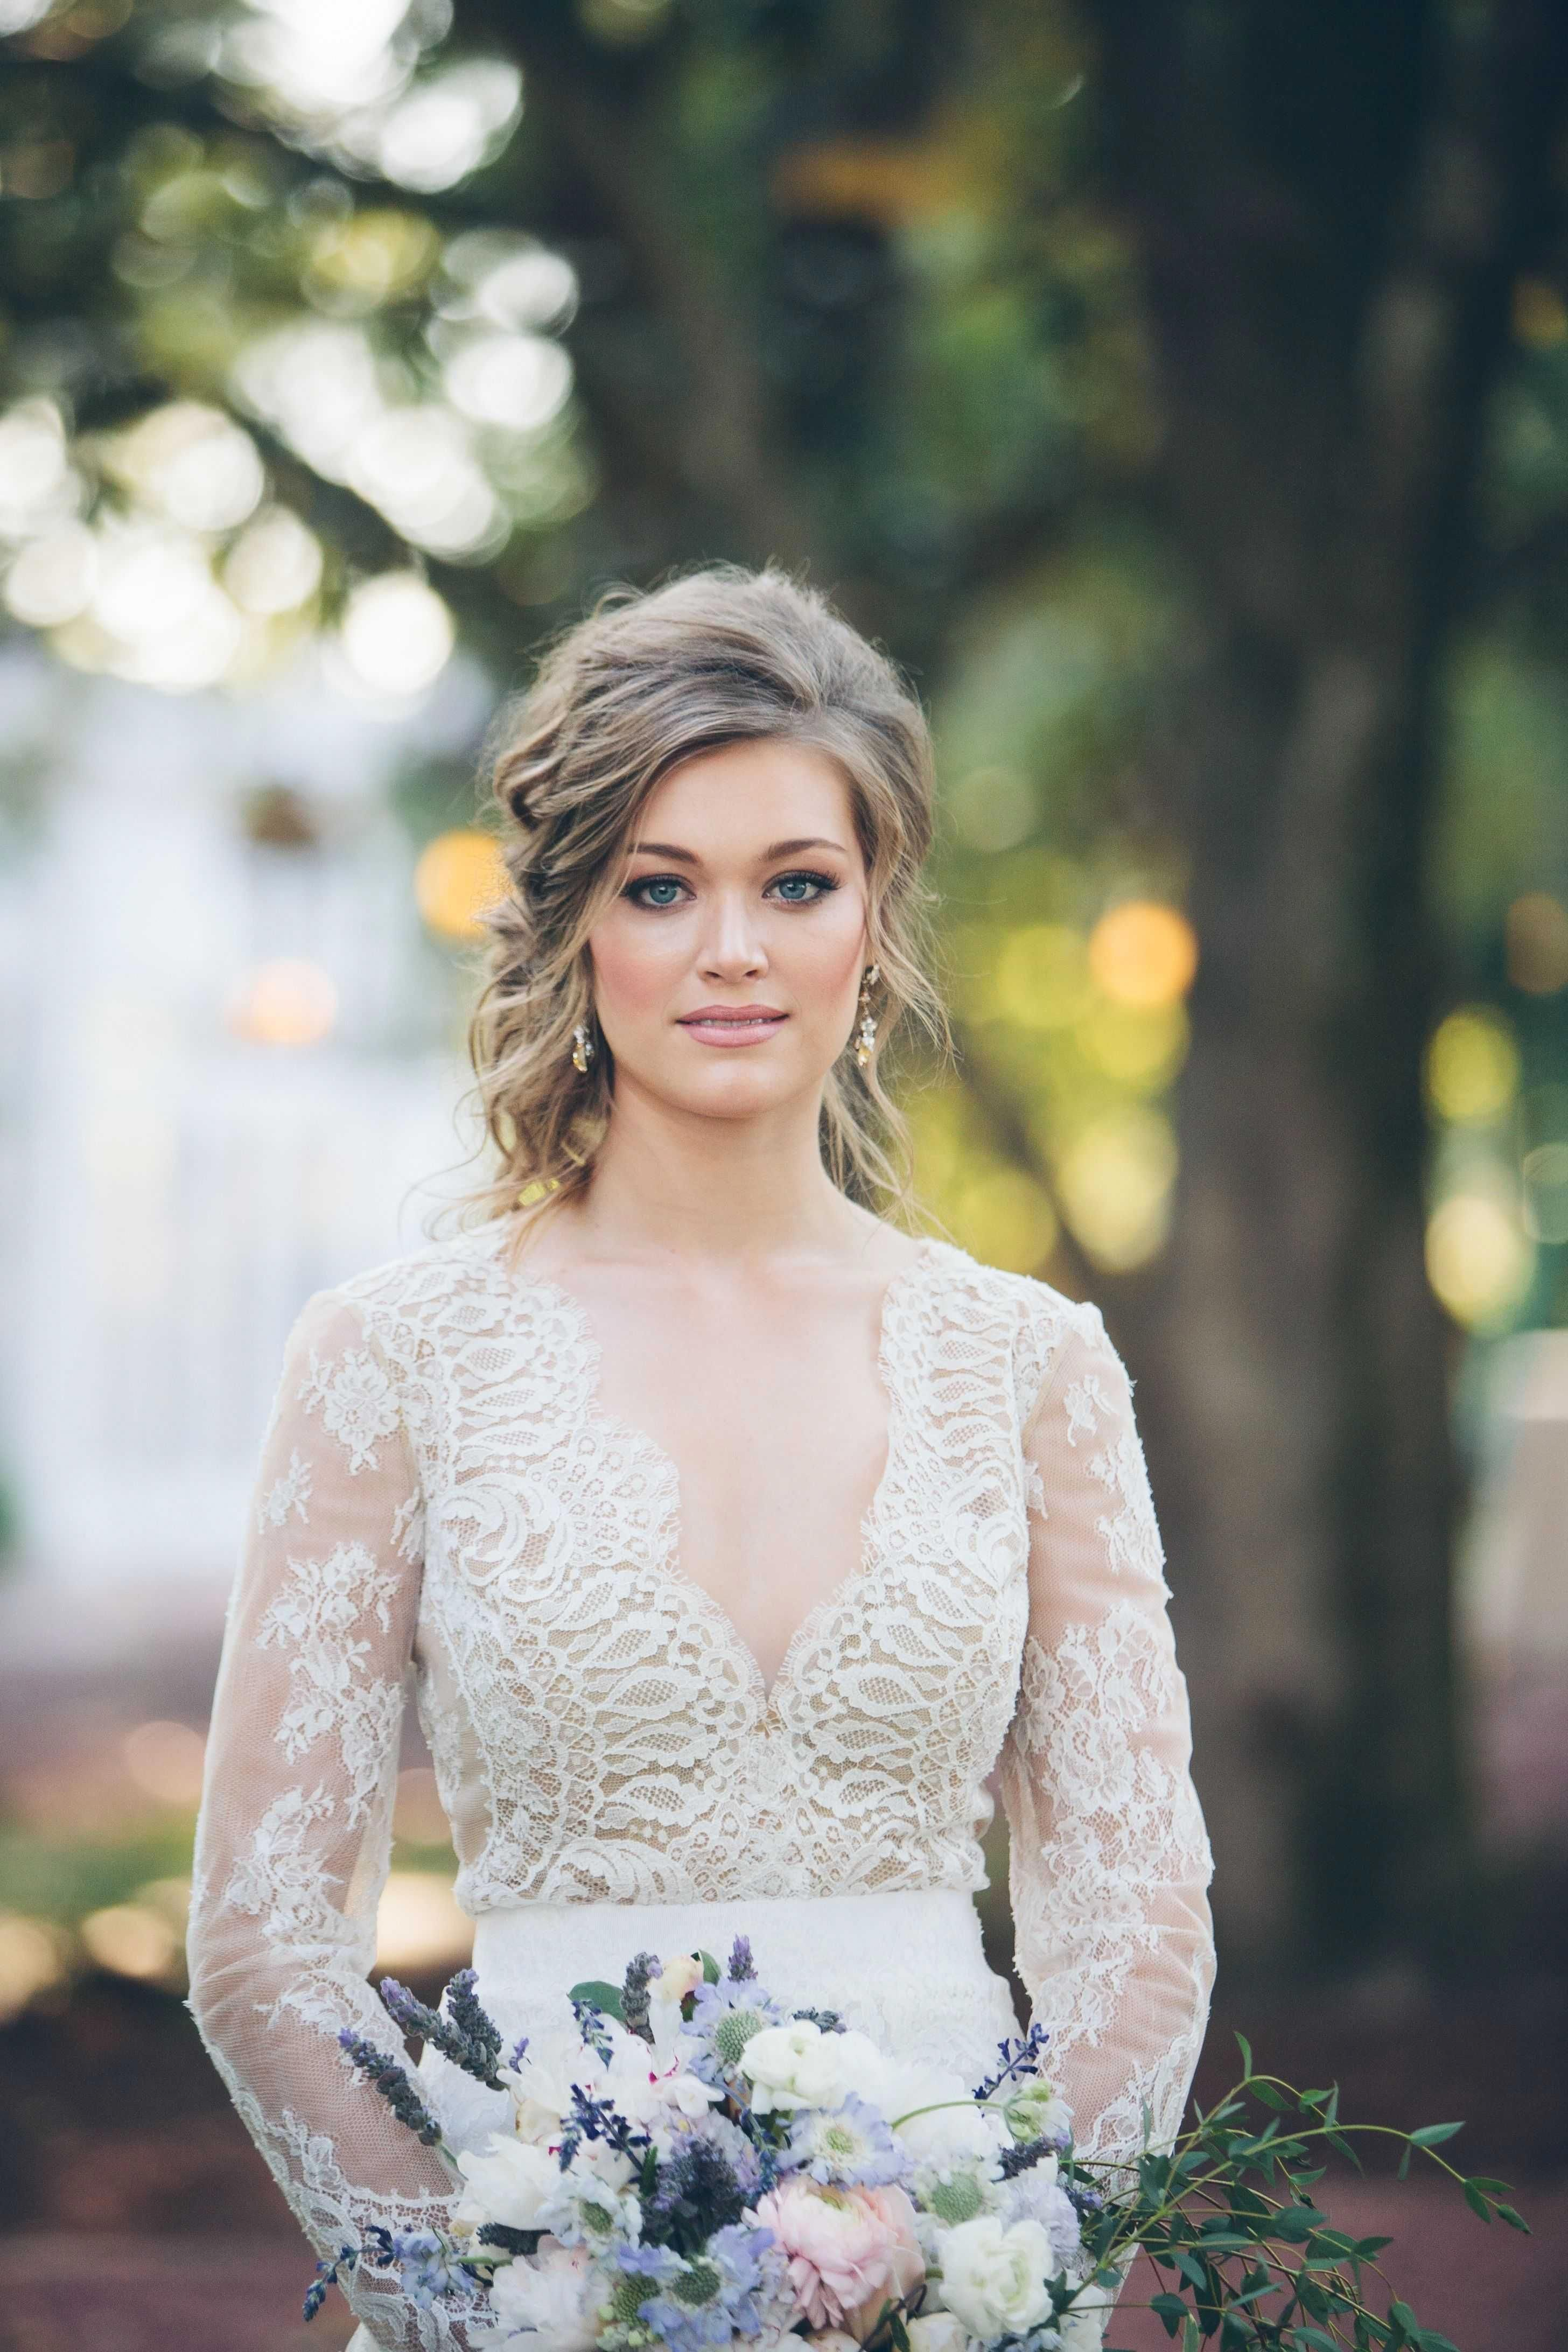 Wedding Hairstyles For Backless Dresses Awesome Wedding